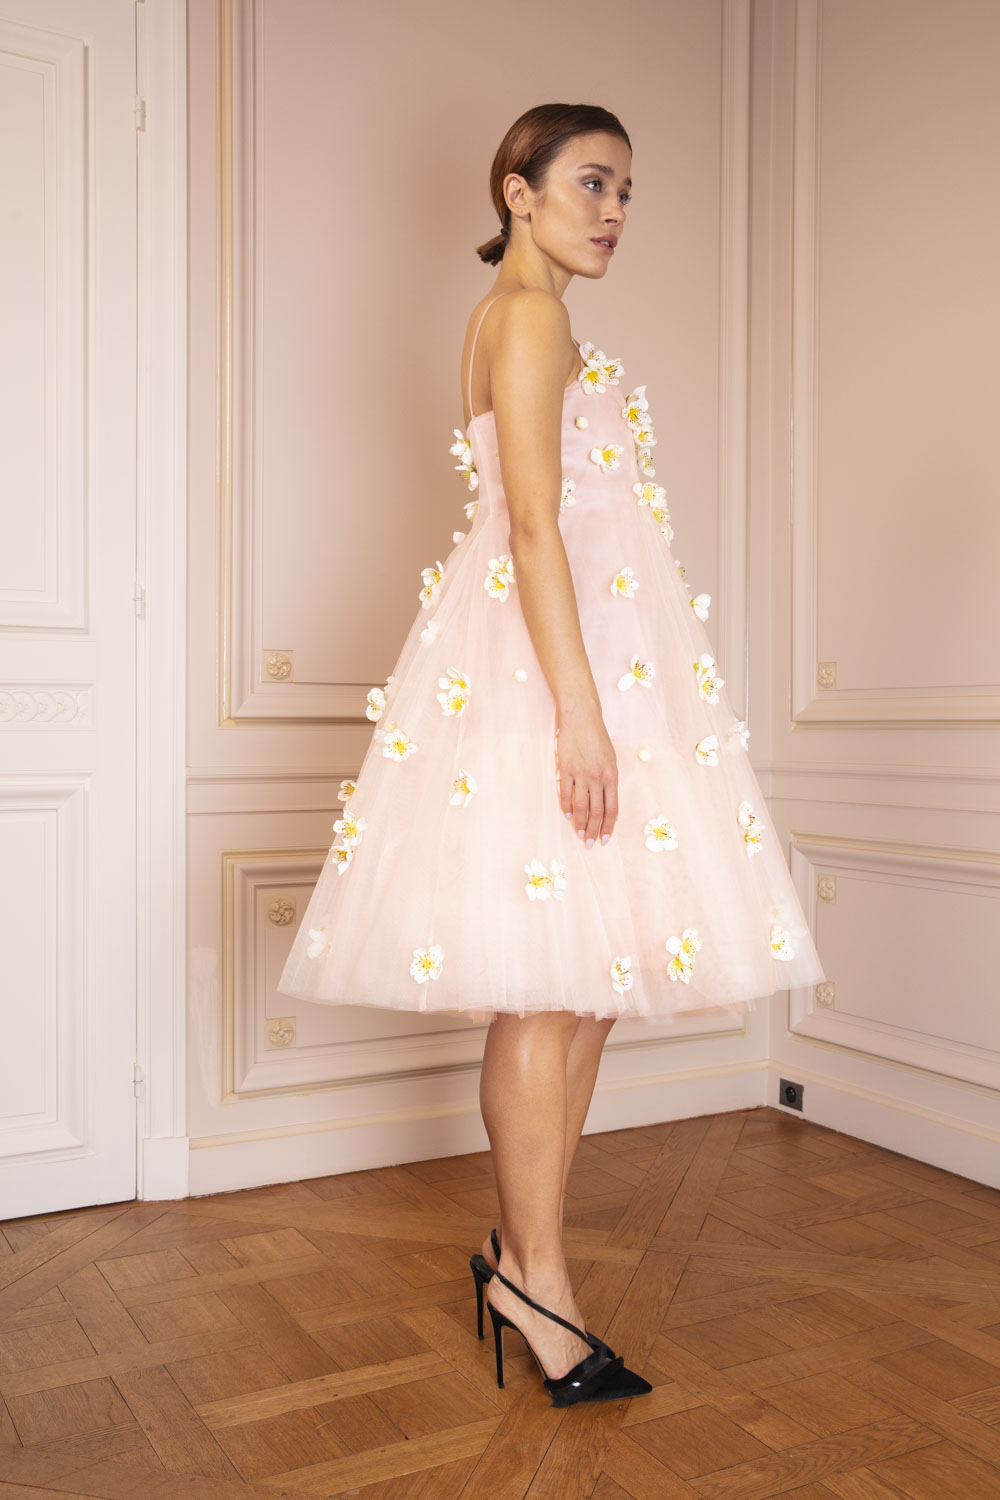 Pale pink frou-frou dress embellished with blossoms